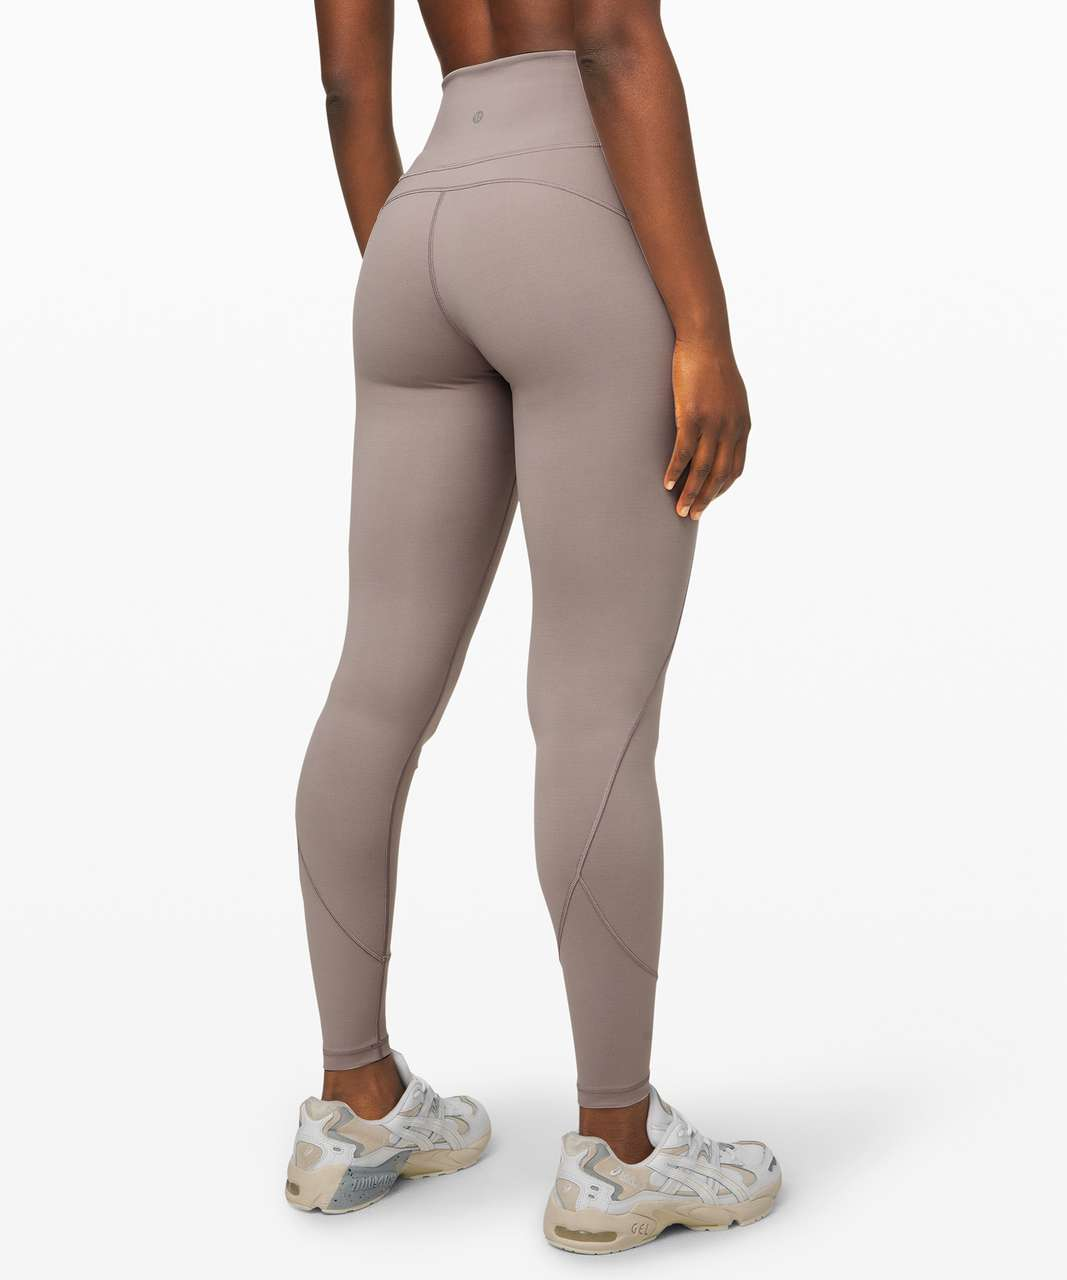 "Lululemon In Movement Tight 28"" *Everlux - Dark Chrome"